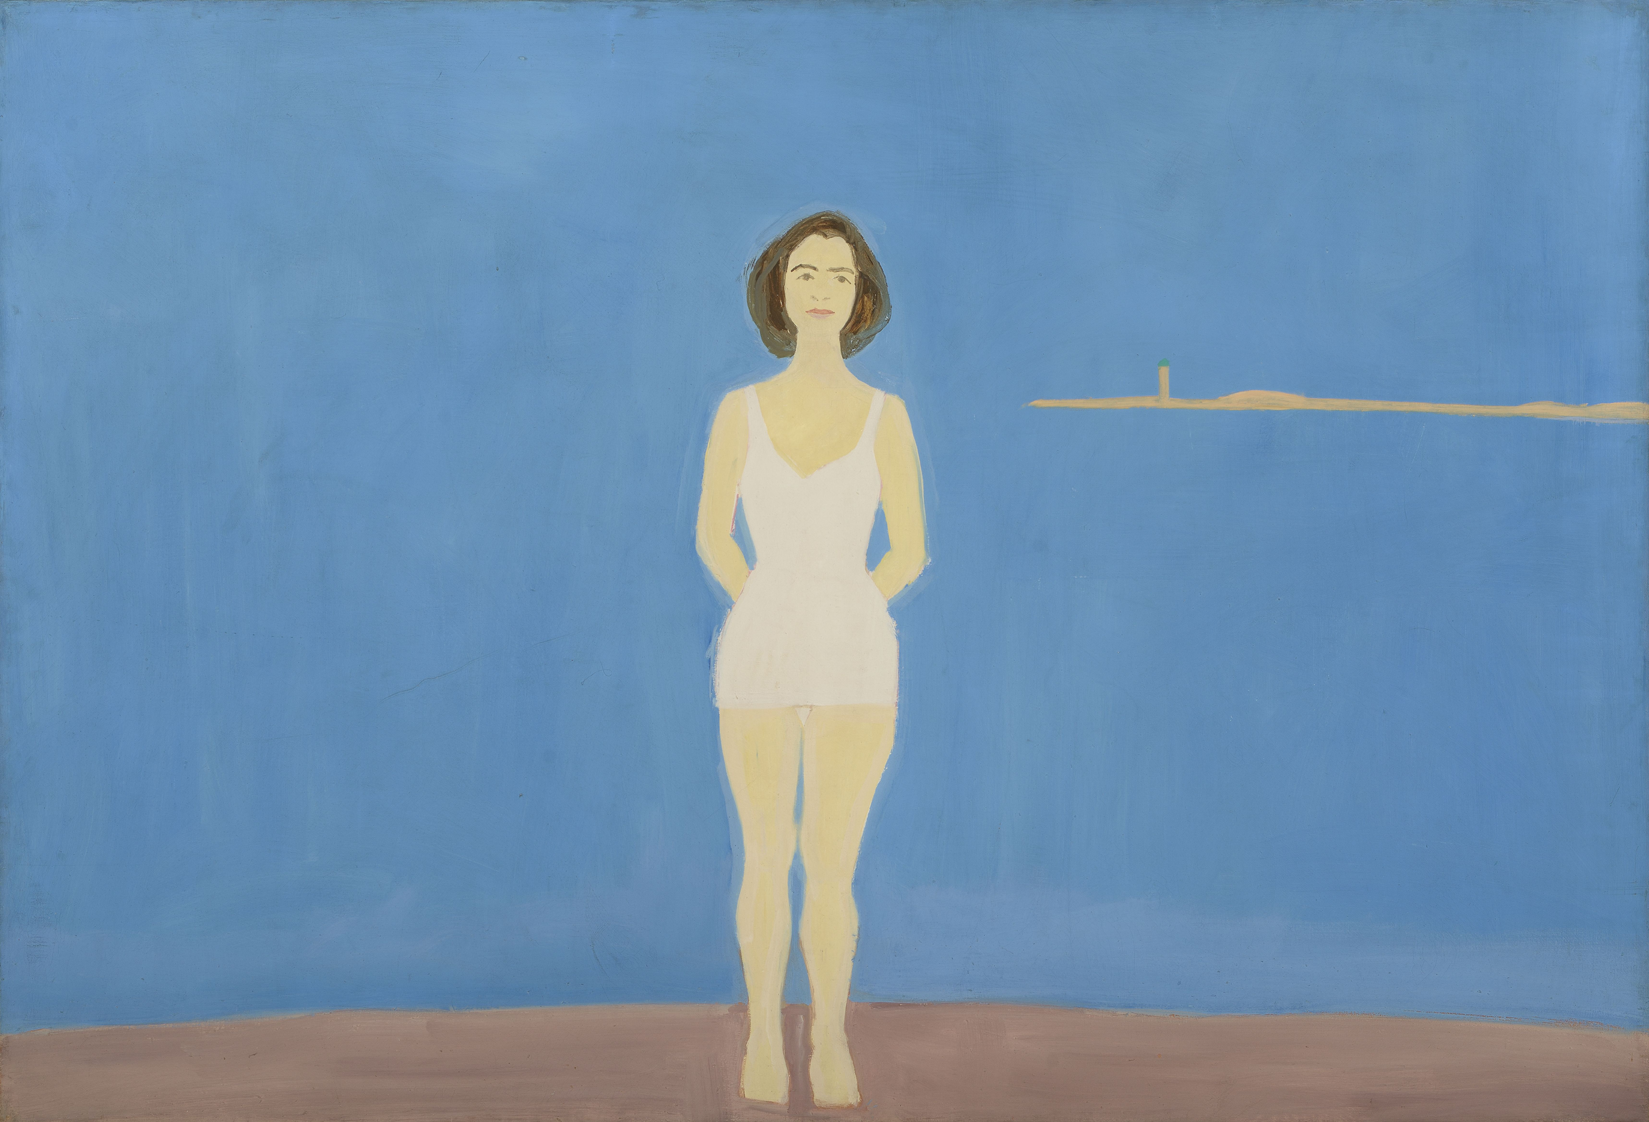 """Bather,"" 1959. Alex Katz (American, b. 1927). Oil on linen; 121.9 x 182.9 cm. Colby College Museum of Art, Museum purchase made possible by Peter and Paula Lunder through the Lunder Foundation, Michael Gordon '66, Barbara and Theodore Alfond through the Acorn Foundation, and the Jere Abbott Acquisitions Fund, 2016.189. Art © Alex Katz / Licensed by VAGA, New York, NY."